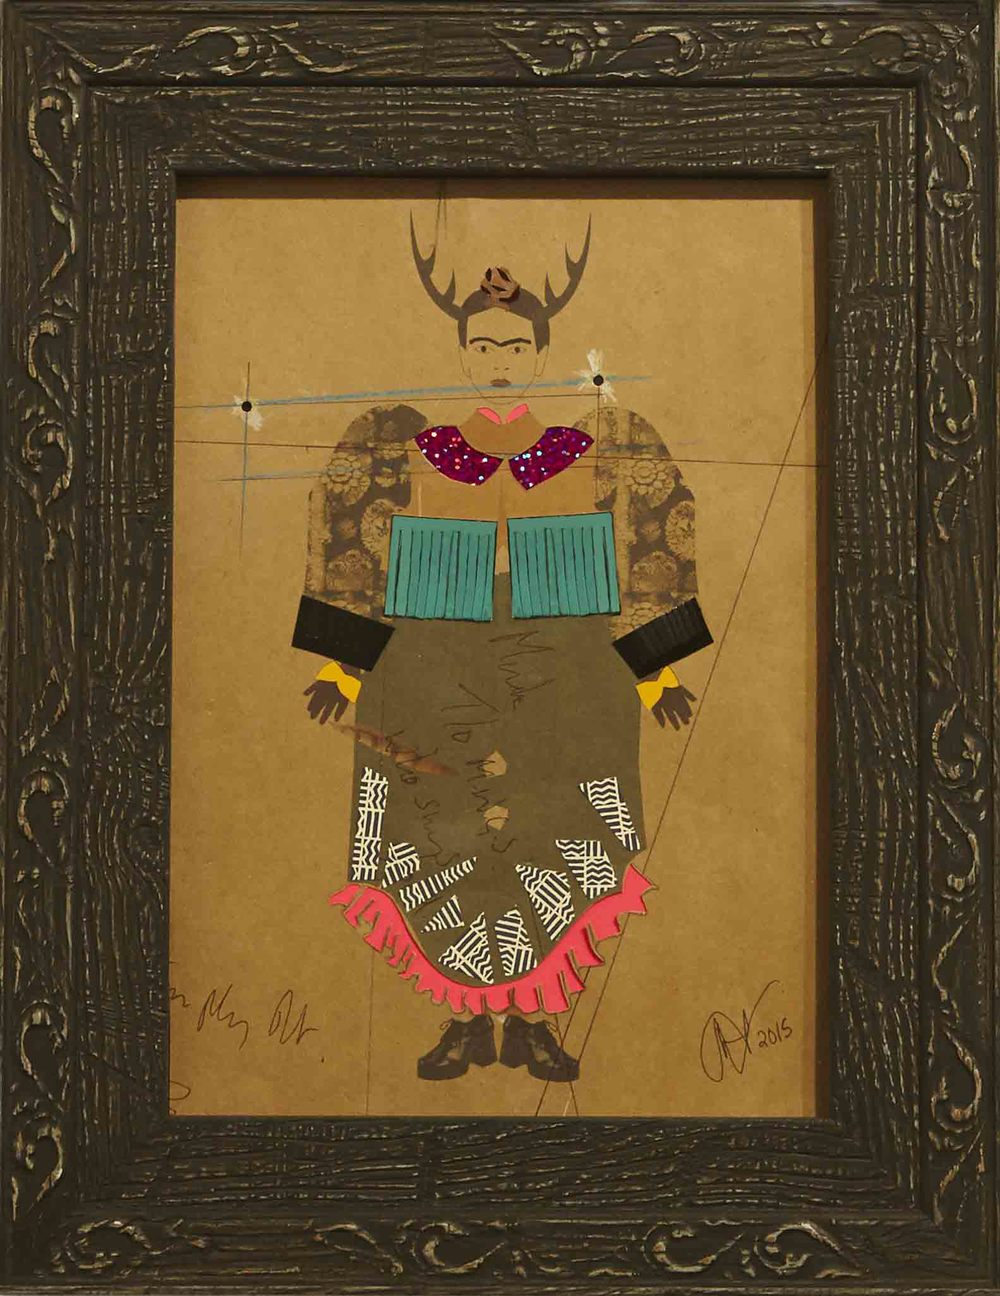 Frida-Wedding portrait Hormazd Narielwalla.jpg